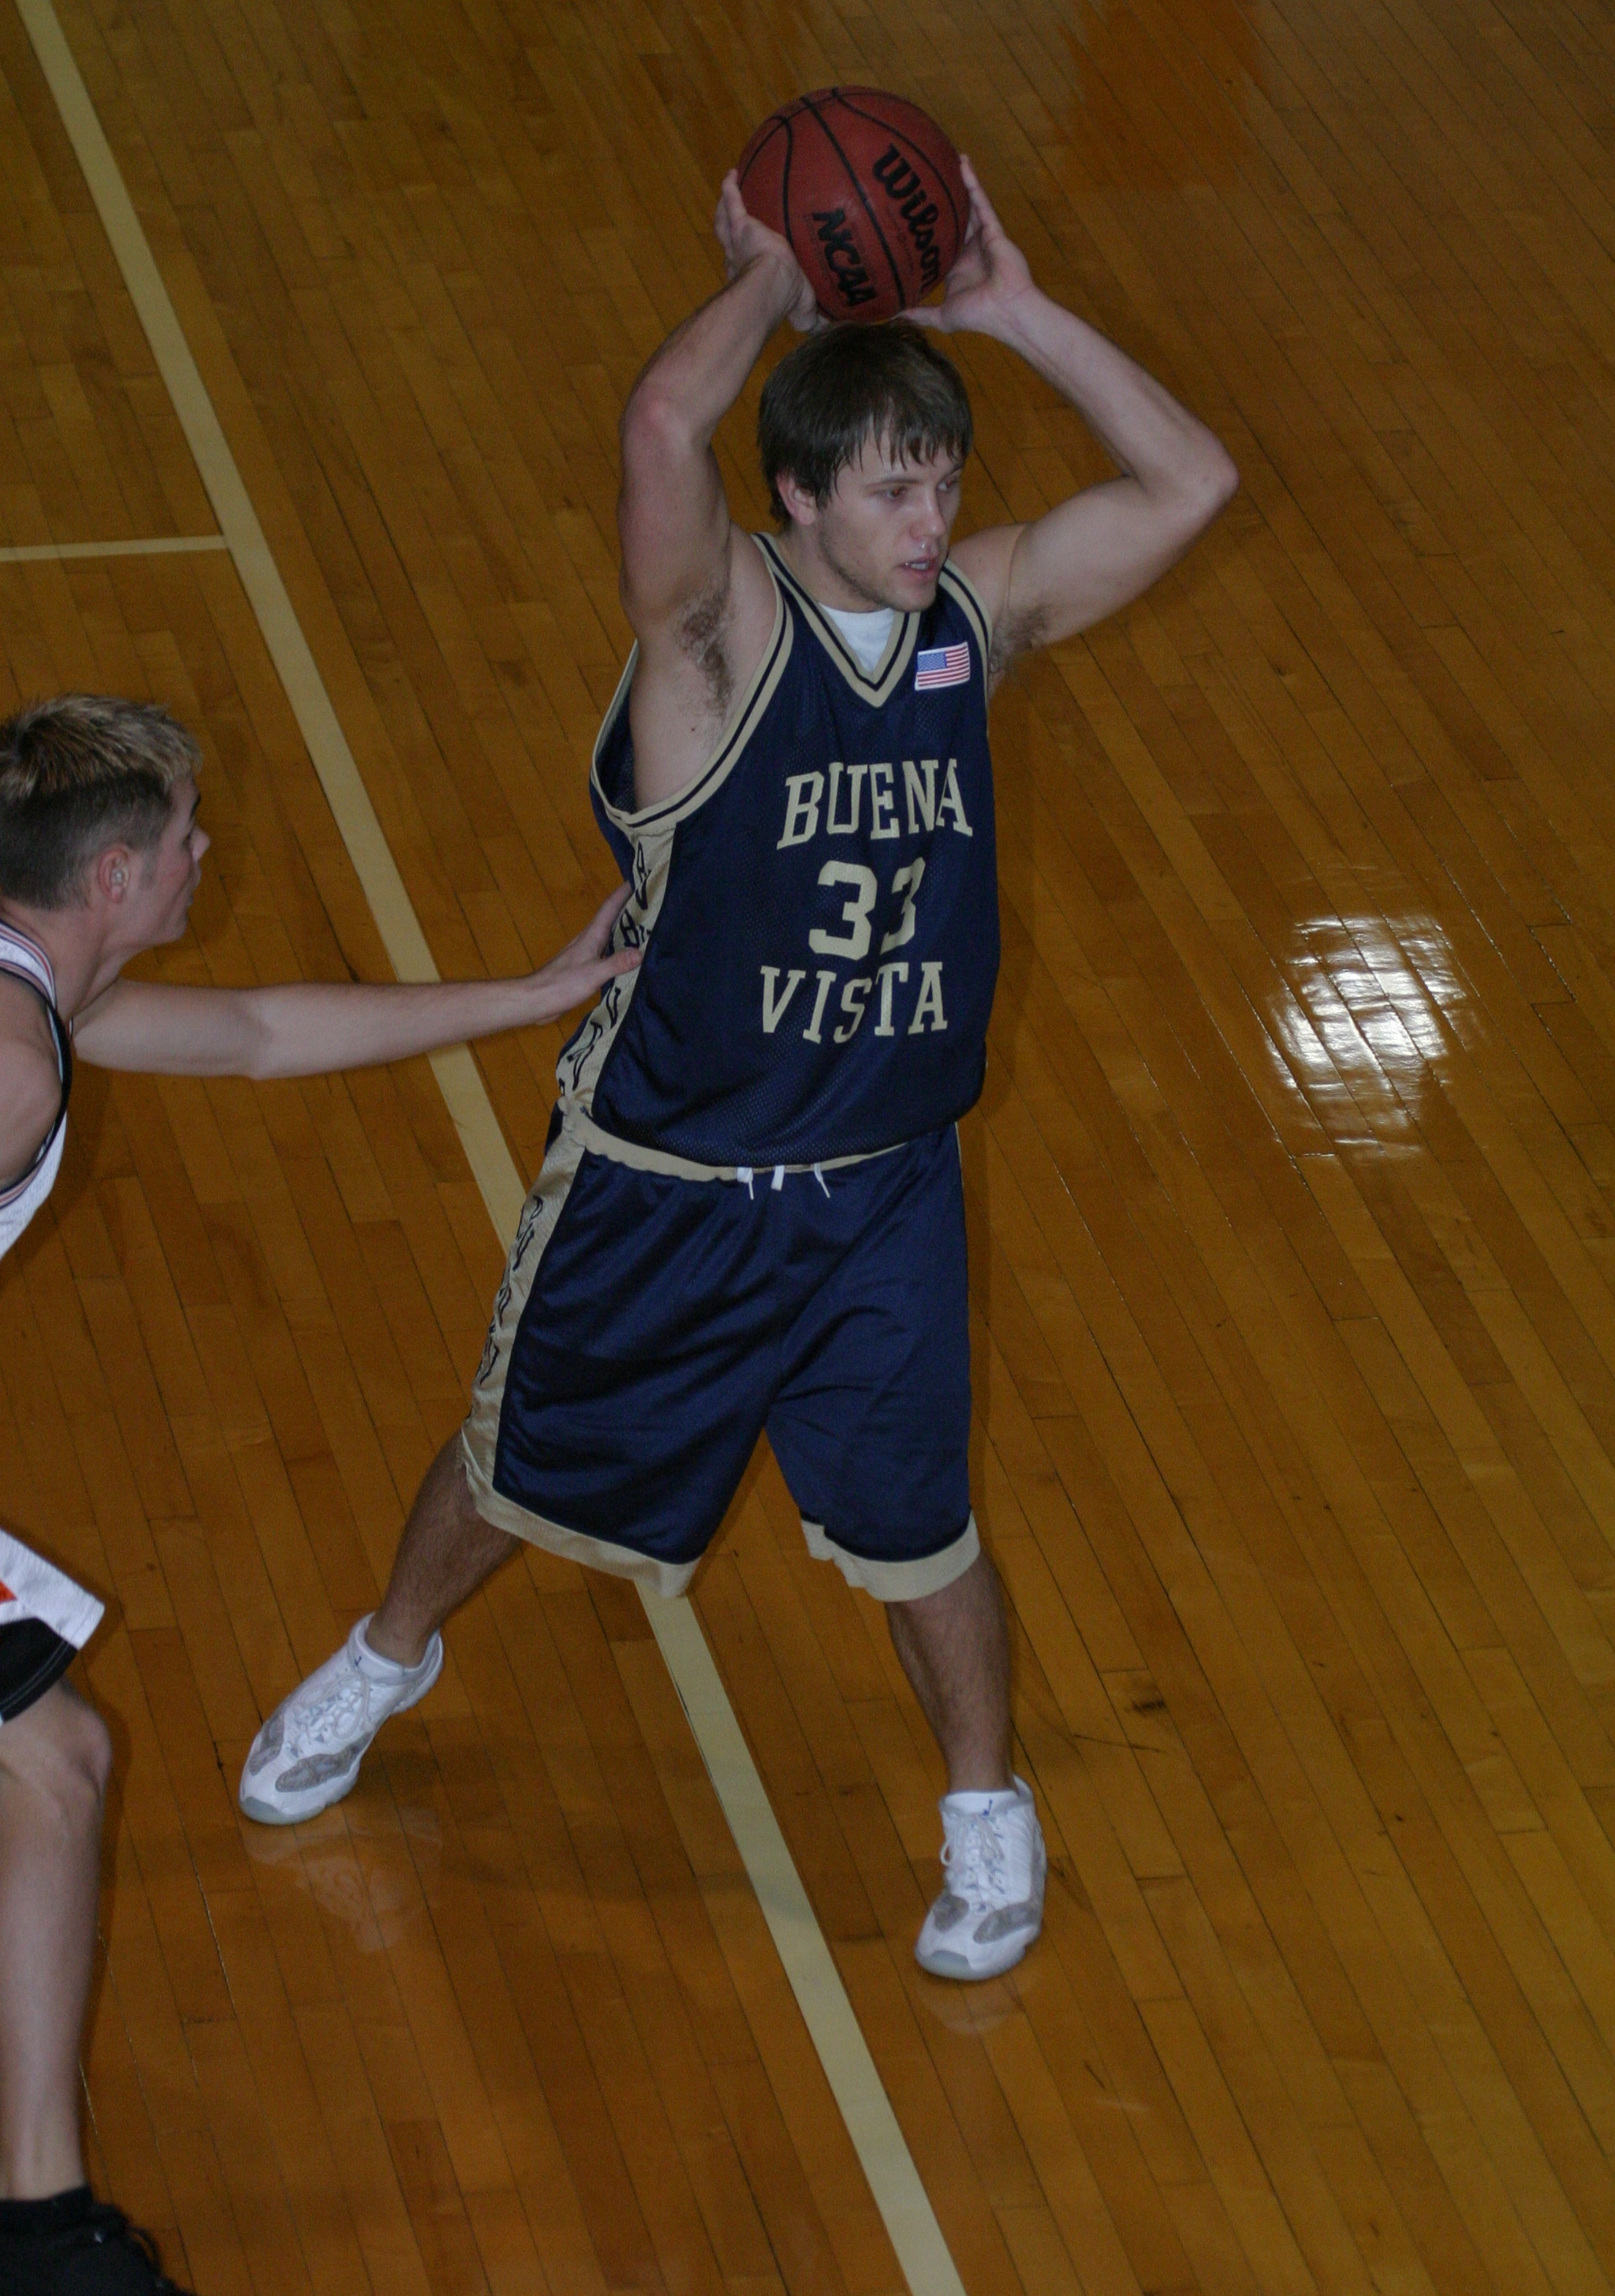 2.5 Casey Pelzer in action at BVU.jpg